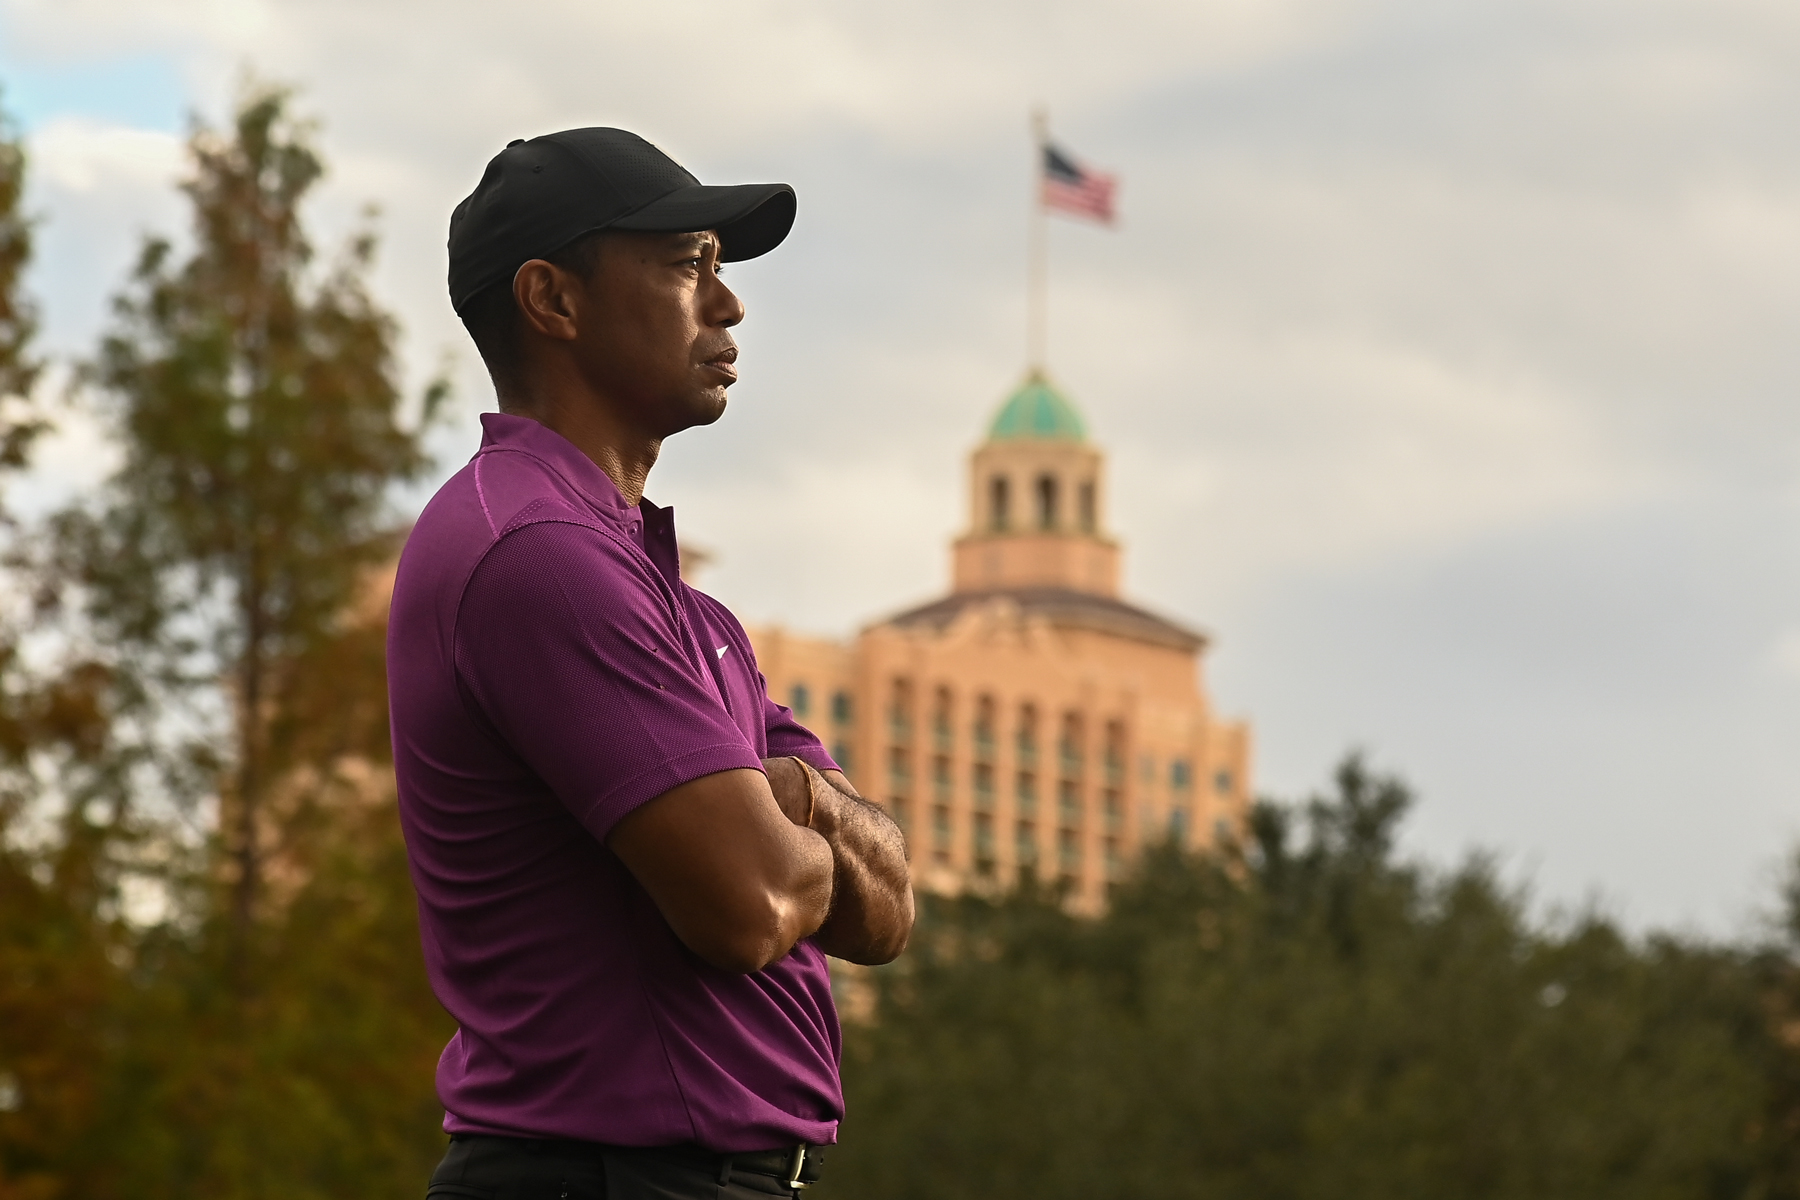 Tiger Woods in Surgery After Getting Injured in L.A. Car Accident